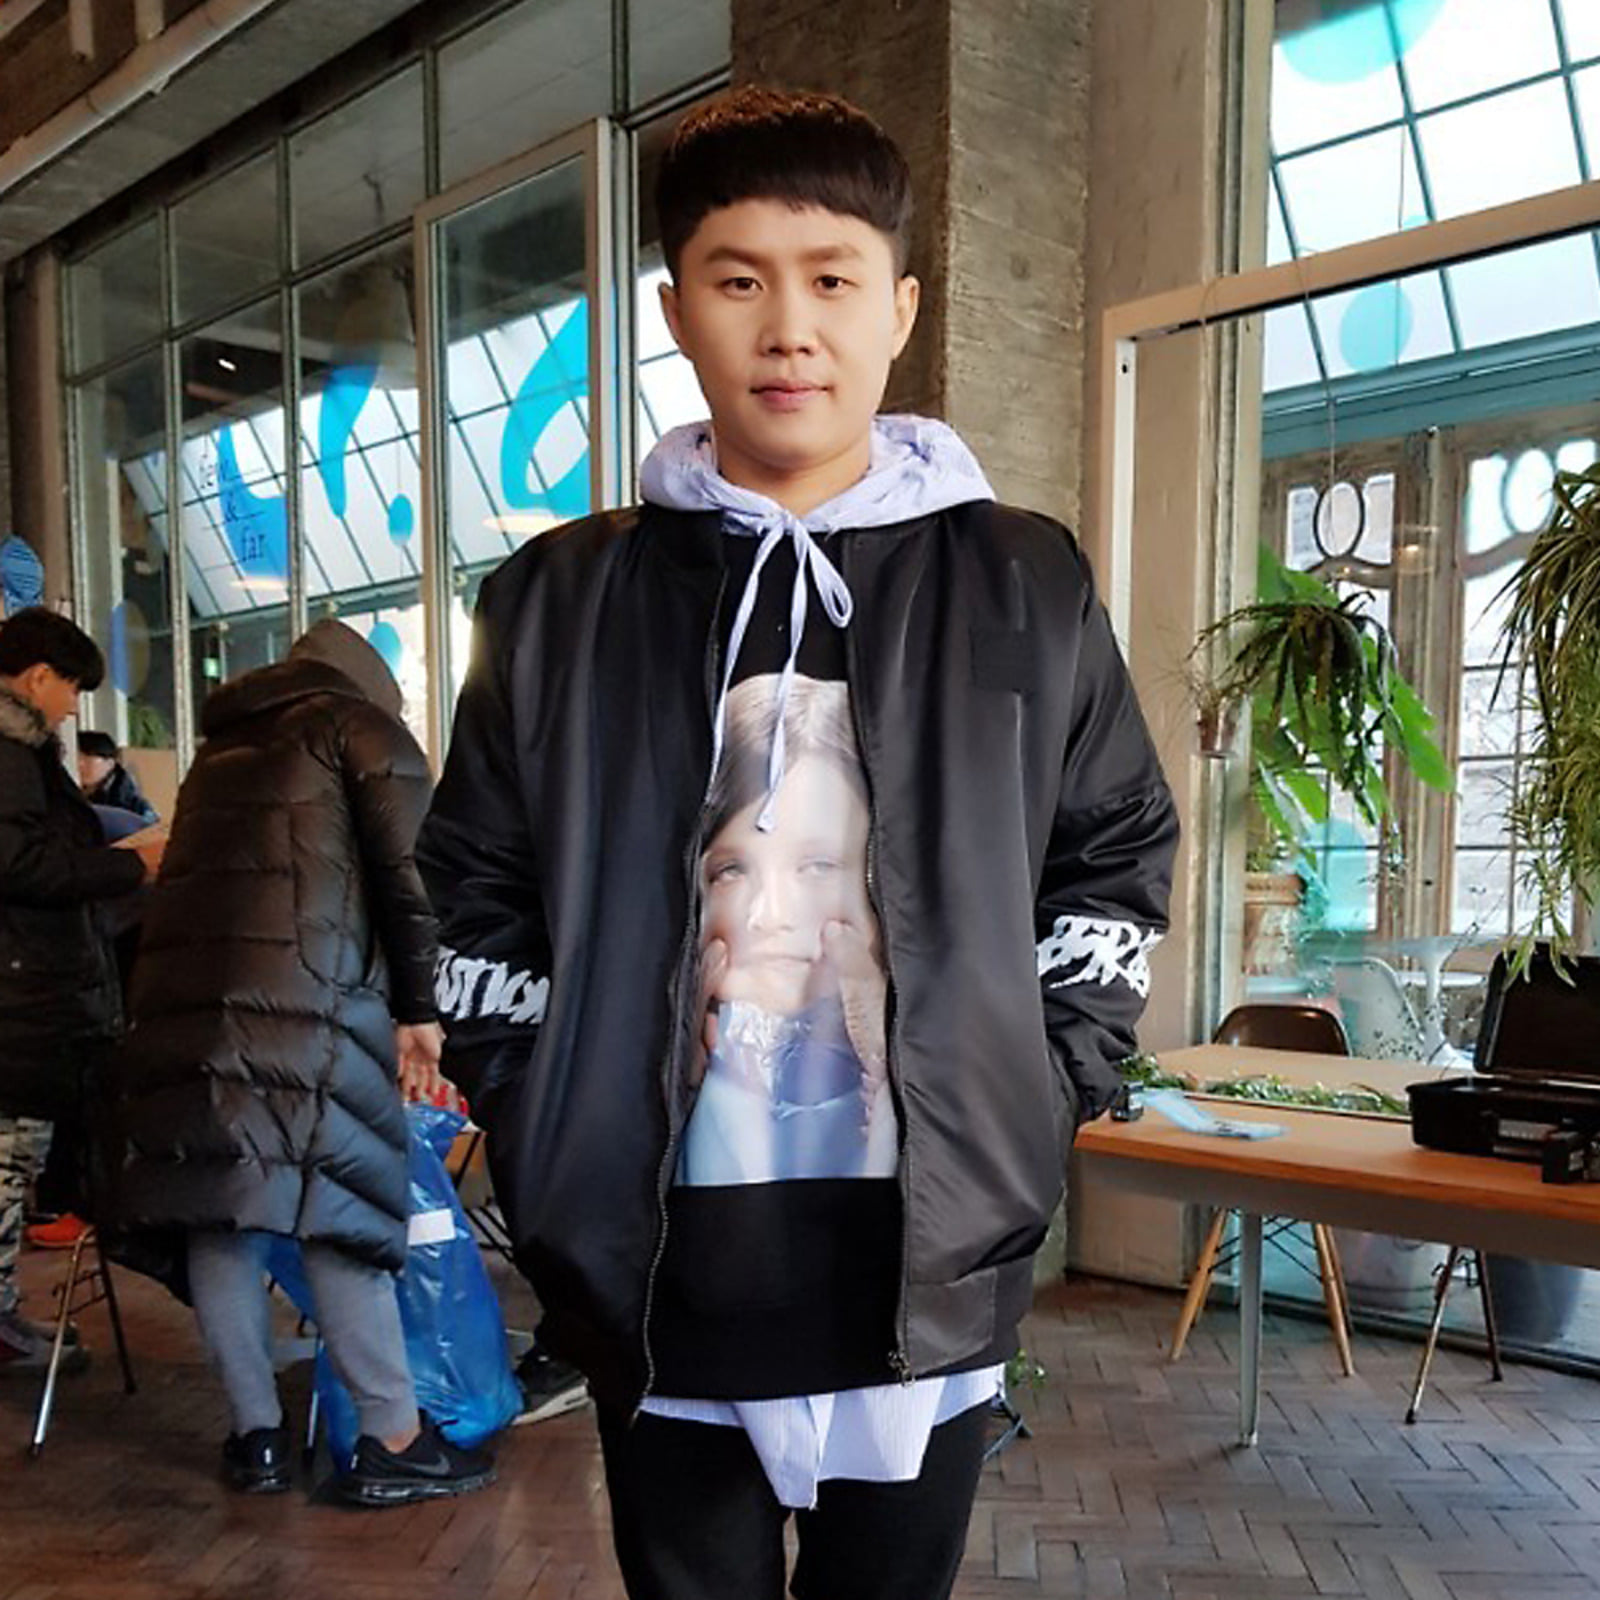 BSRABBIT bsrabbit@BSRABBIT CELEBRITY 양세형 비에스래빗 BSRABBIT MBC 예능 '무한도전' 479회 의상 협찬  Attention Stadium jacket BLACK